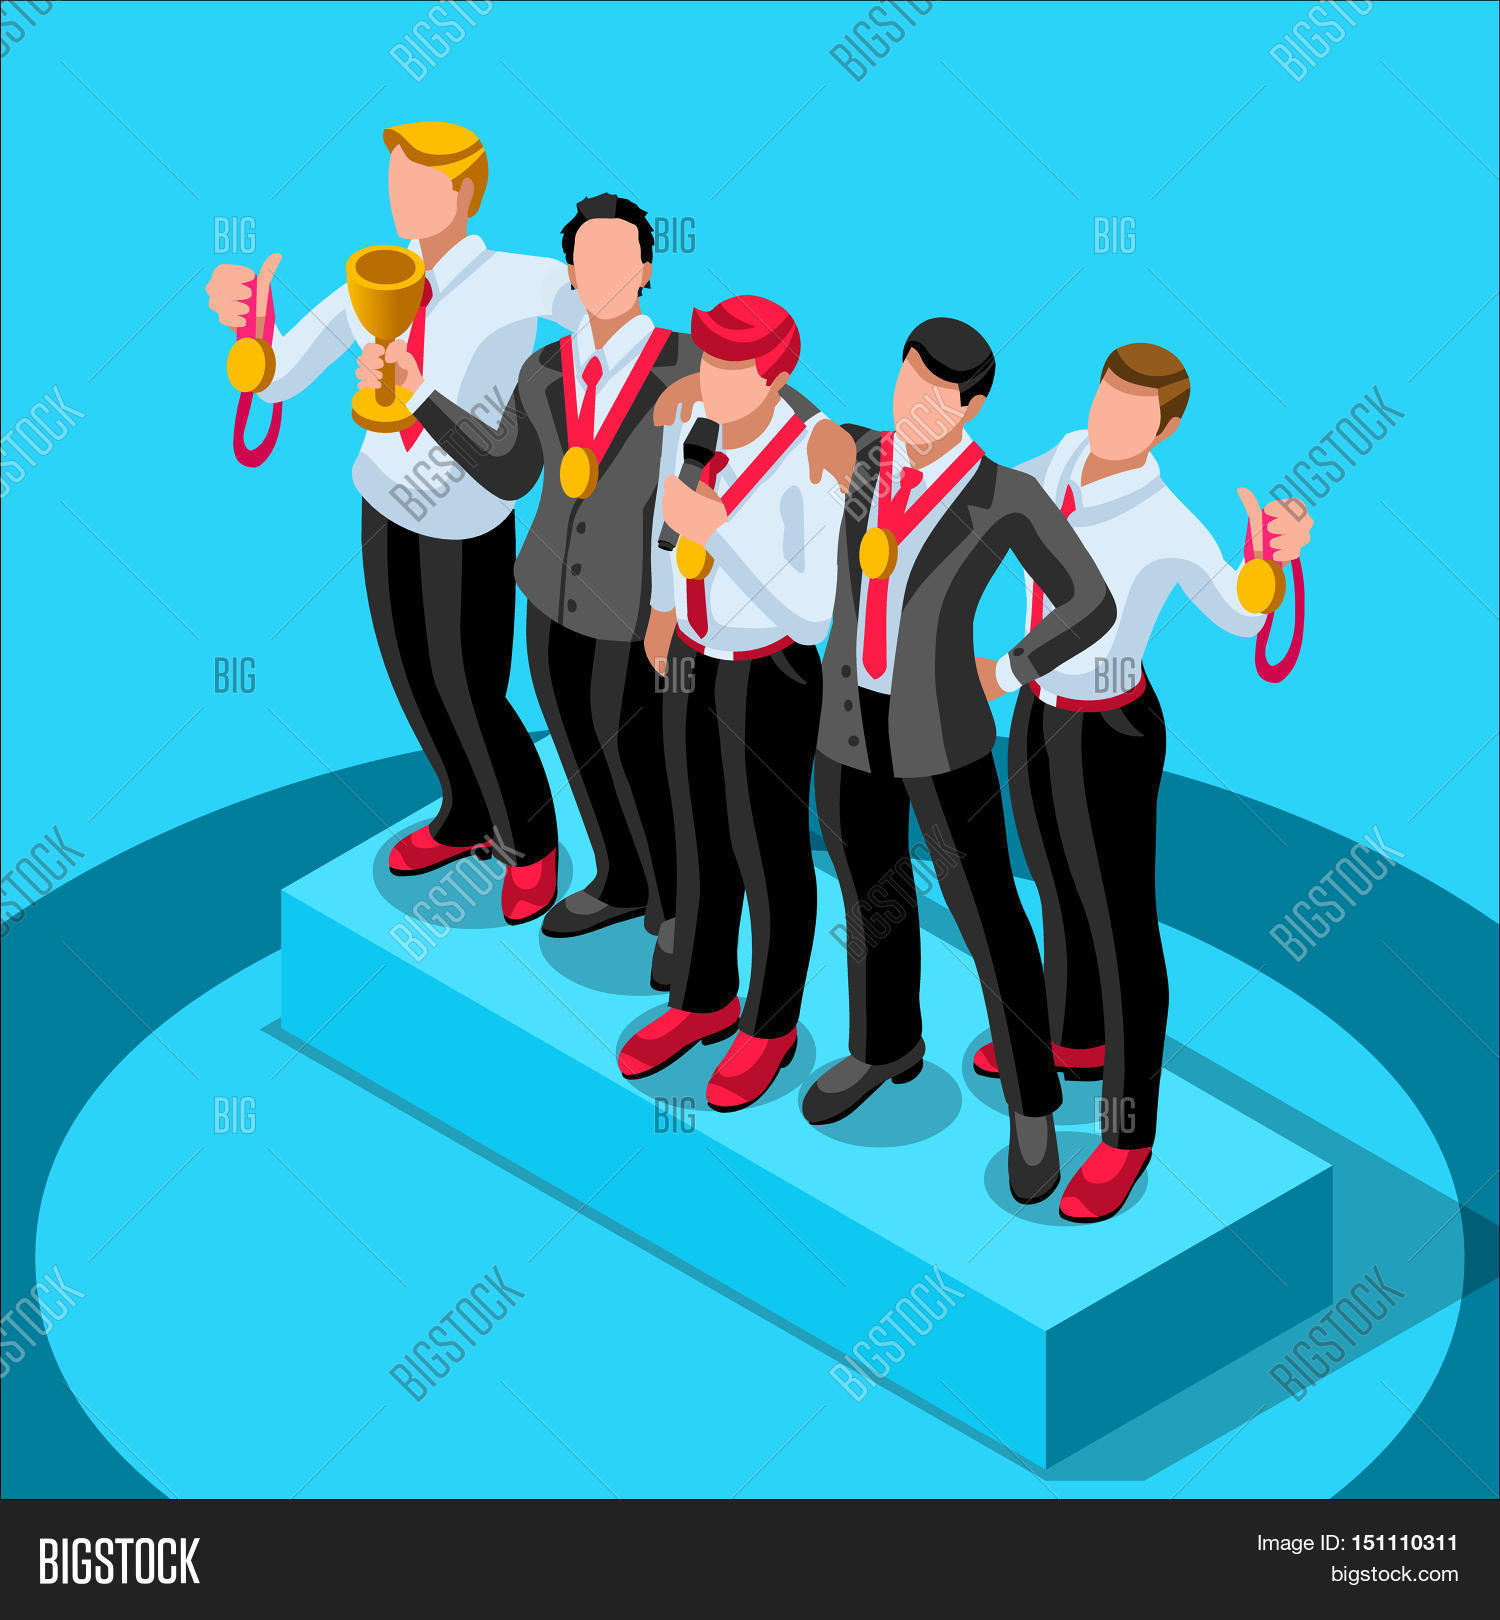 Character Design Career Information : Business concept infographic vector photo bigstock